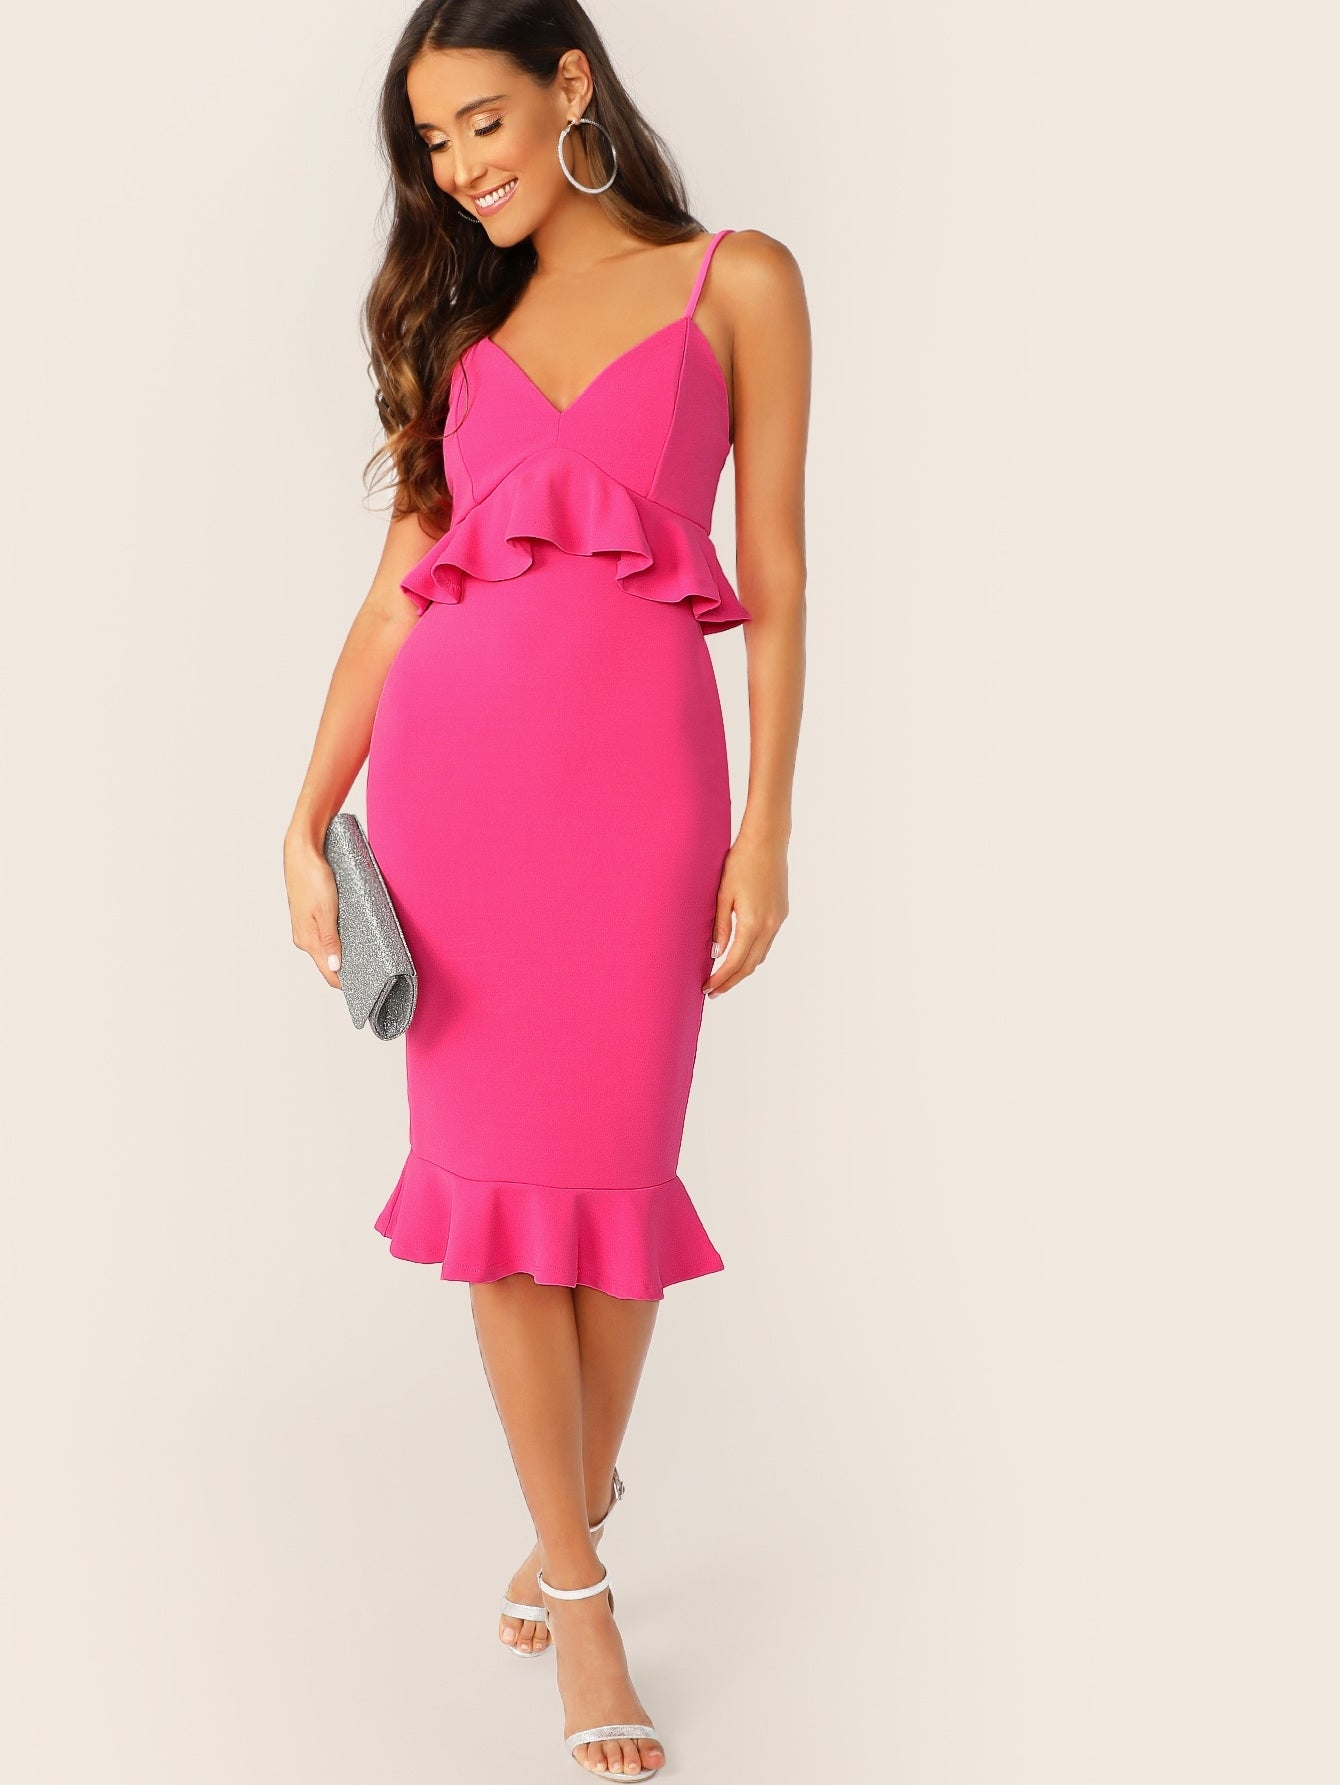 Neon Pink Bodycon Pep Slip Dress-Elegant-Trendy-JayBoutique-Hot Pink, Neon, Bright-XS-Trendy-JayBoutique